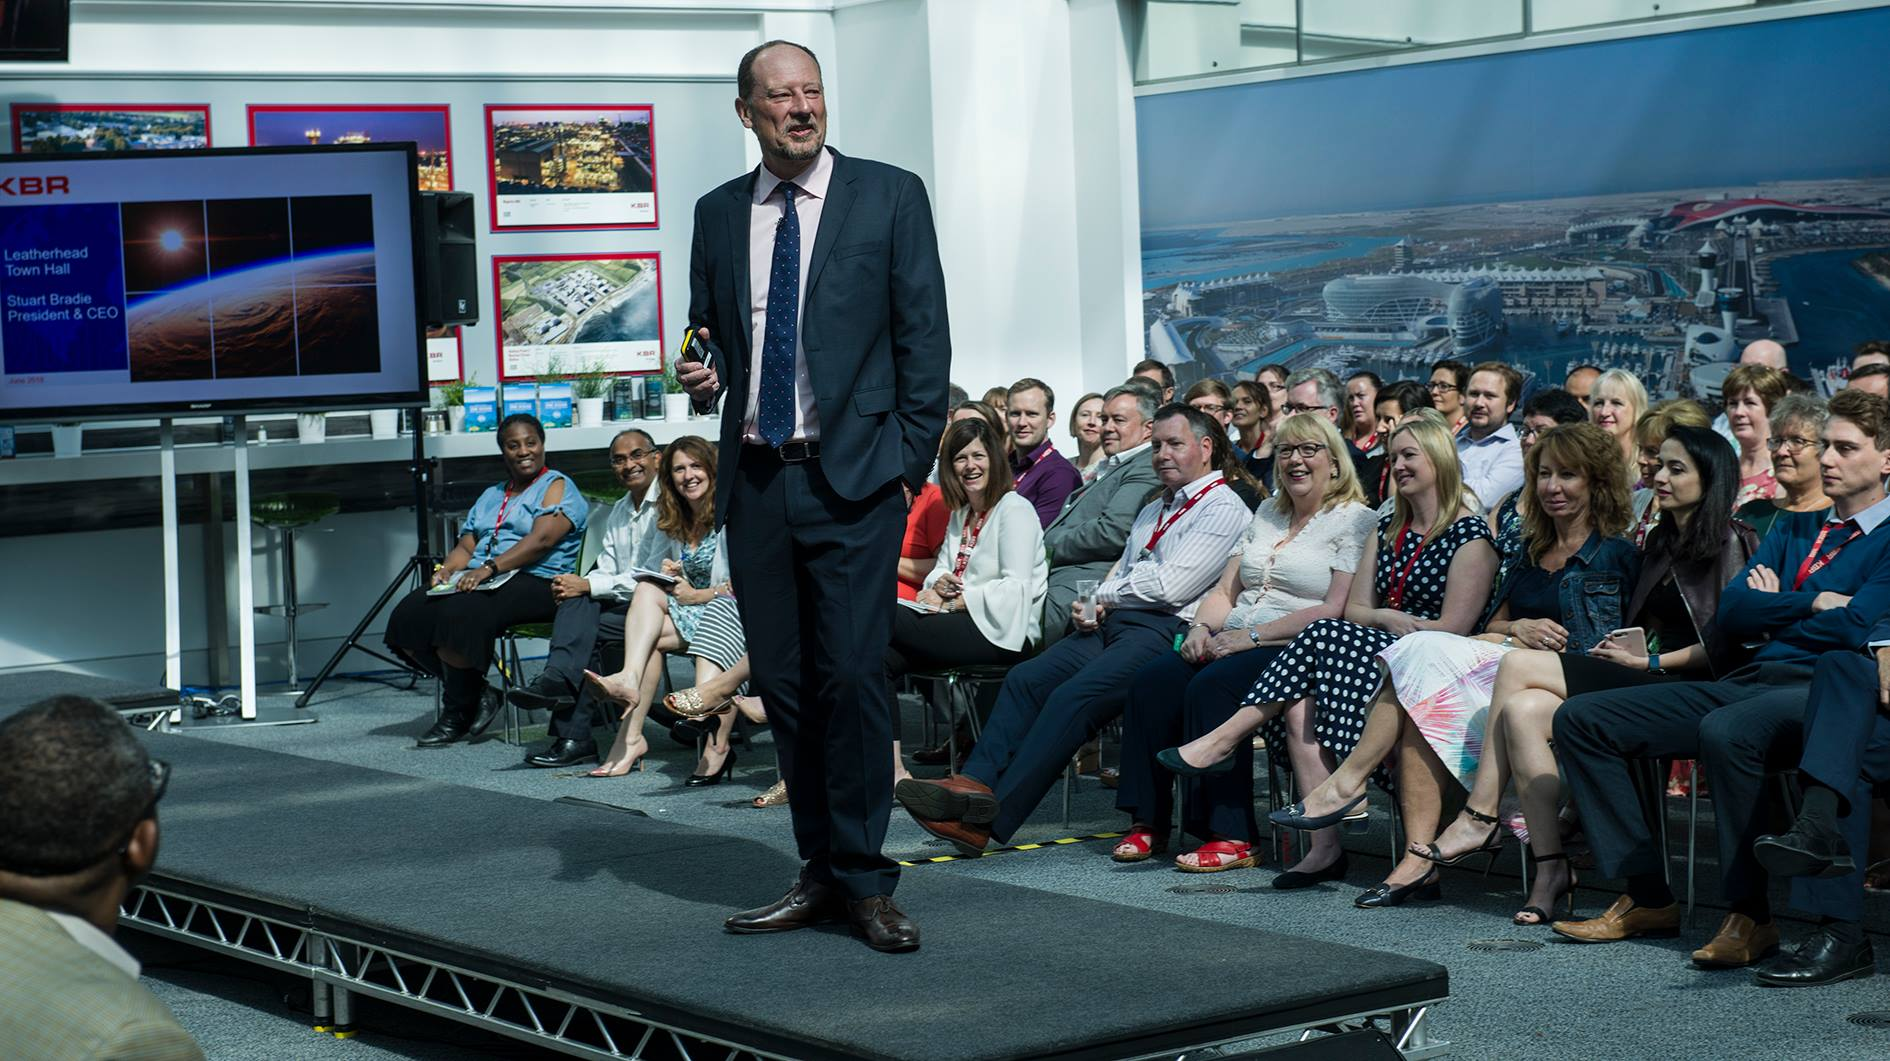 KBR CEO speak to the staff at a company event